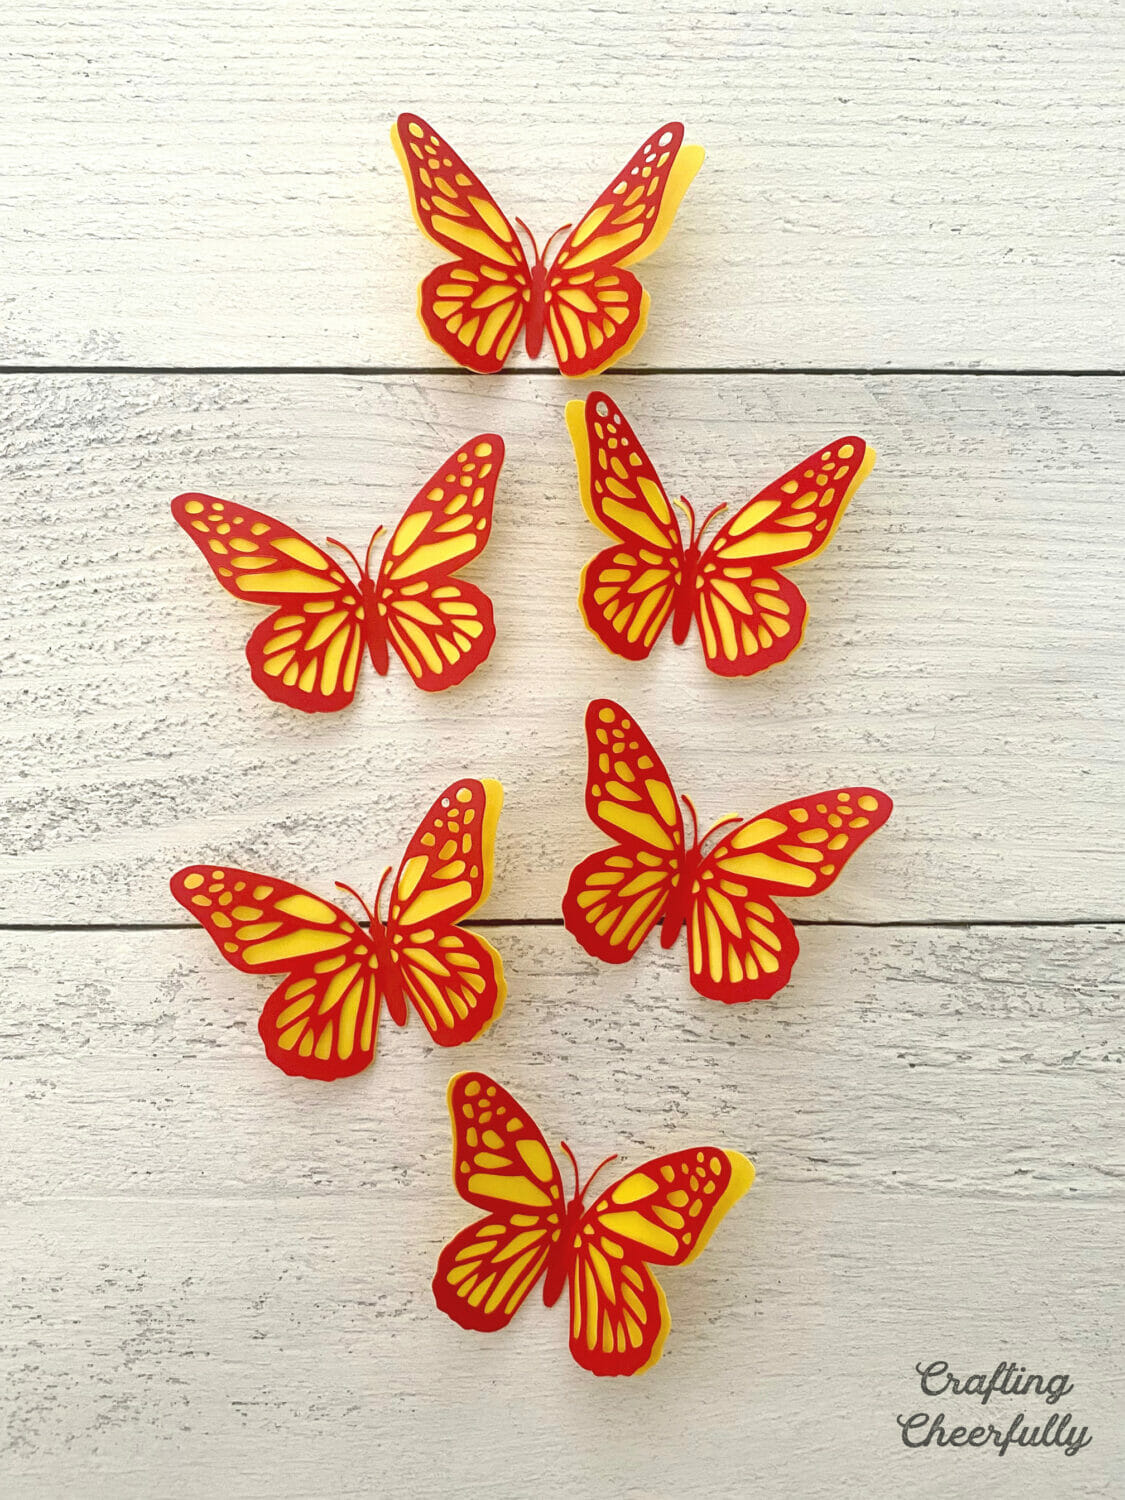 Red and yellow butterflies made from craft plastic are arranged on a wooden surface.